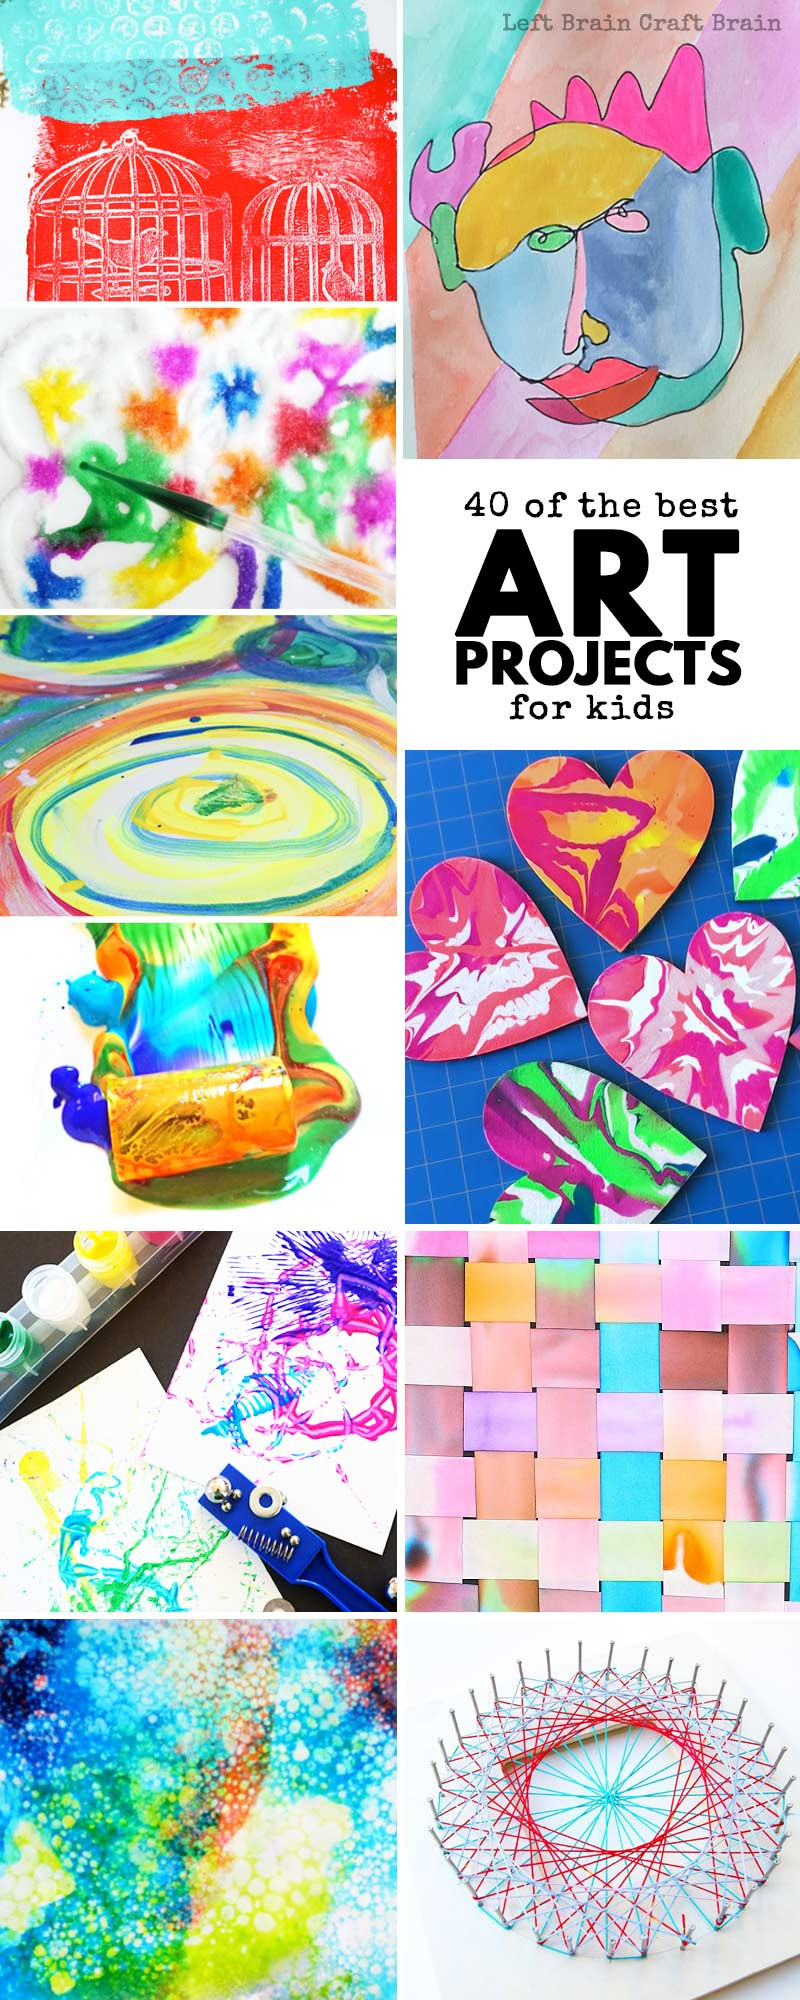 Best ideas about Art Projects Kids . Save or Pin 40 of the Best Art Projects for Kids Left Brain Craft Brain Now.